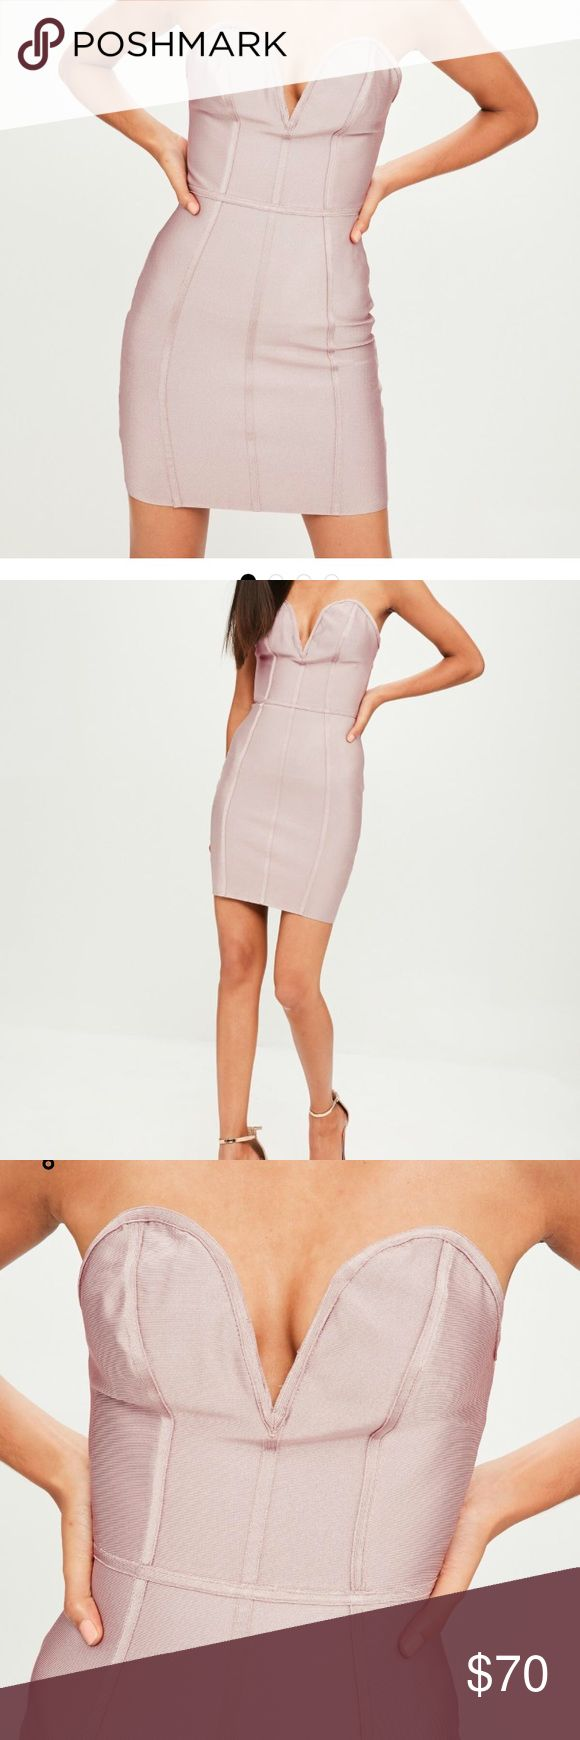 Purple Bandage V Bar Bandeau Bodycon Dress Perfect for homecoming, formal, prom, or a party! New with tags! If you have any questions feel free to ask:) Missguided Dresses Mini